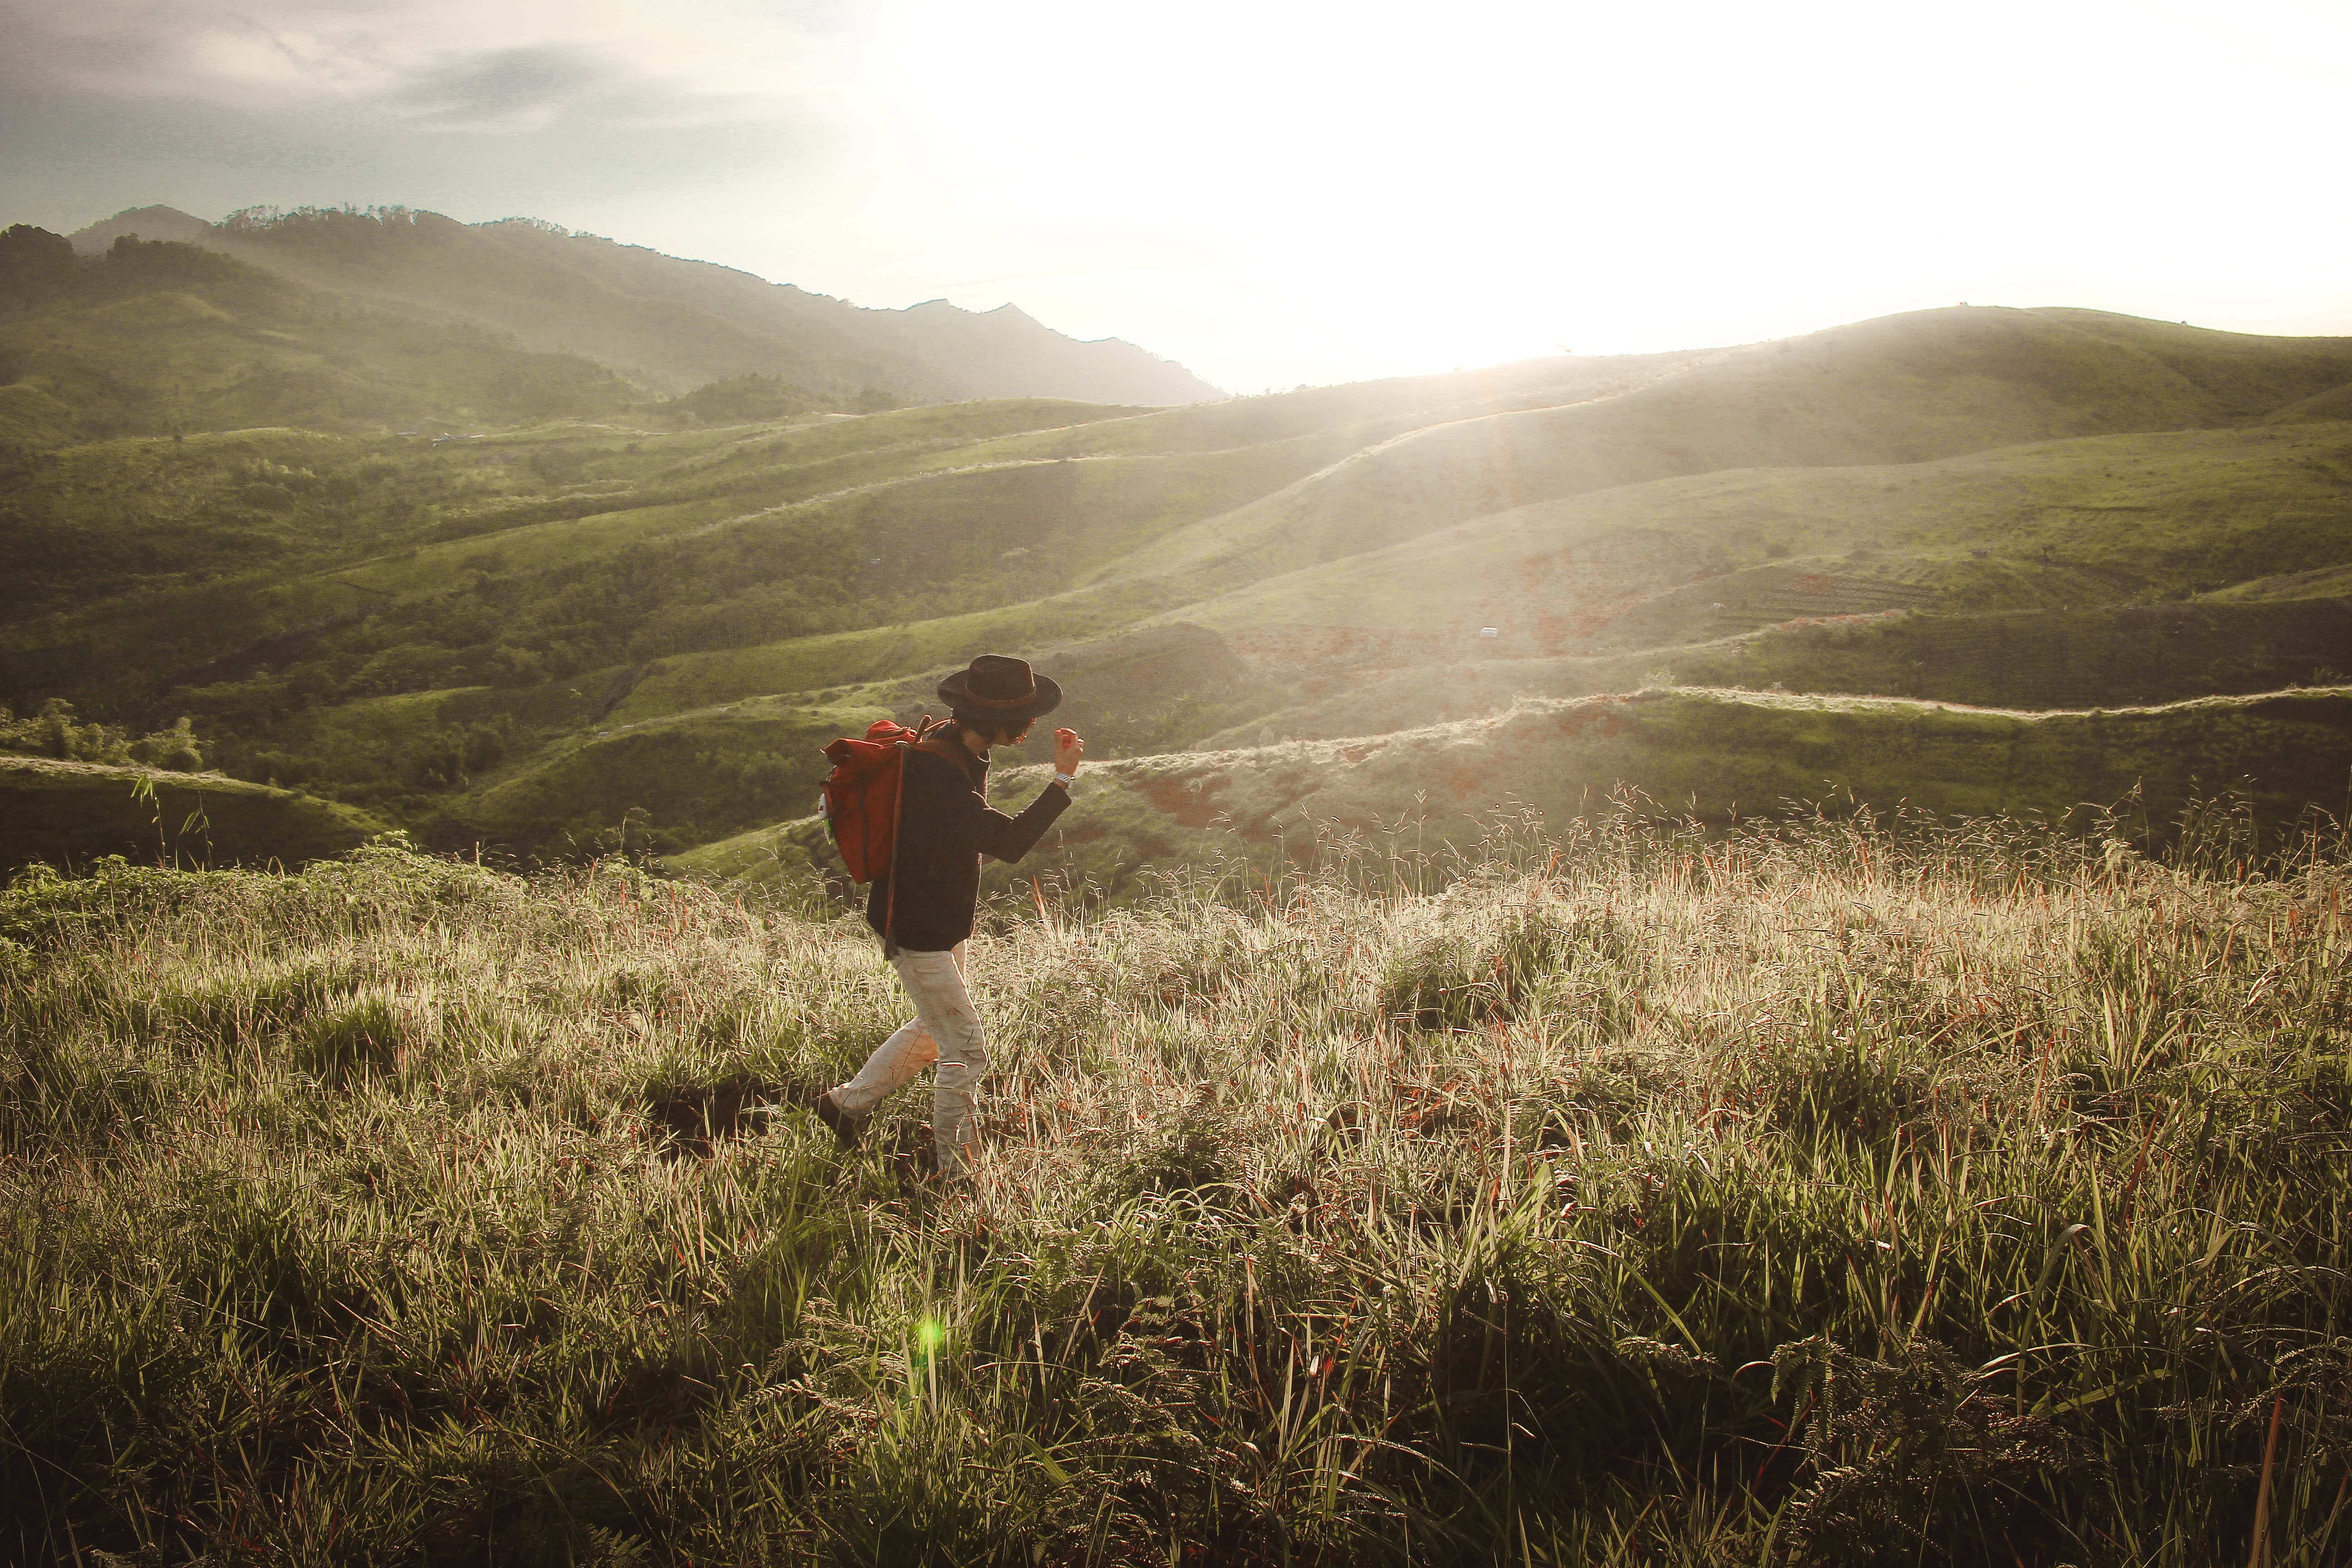 person walking in the middle of mountain grass field